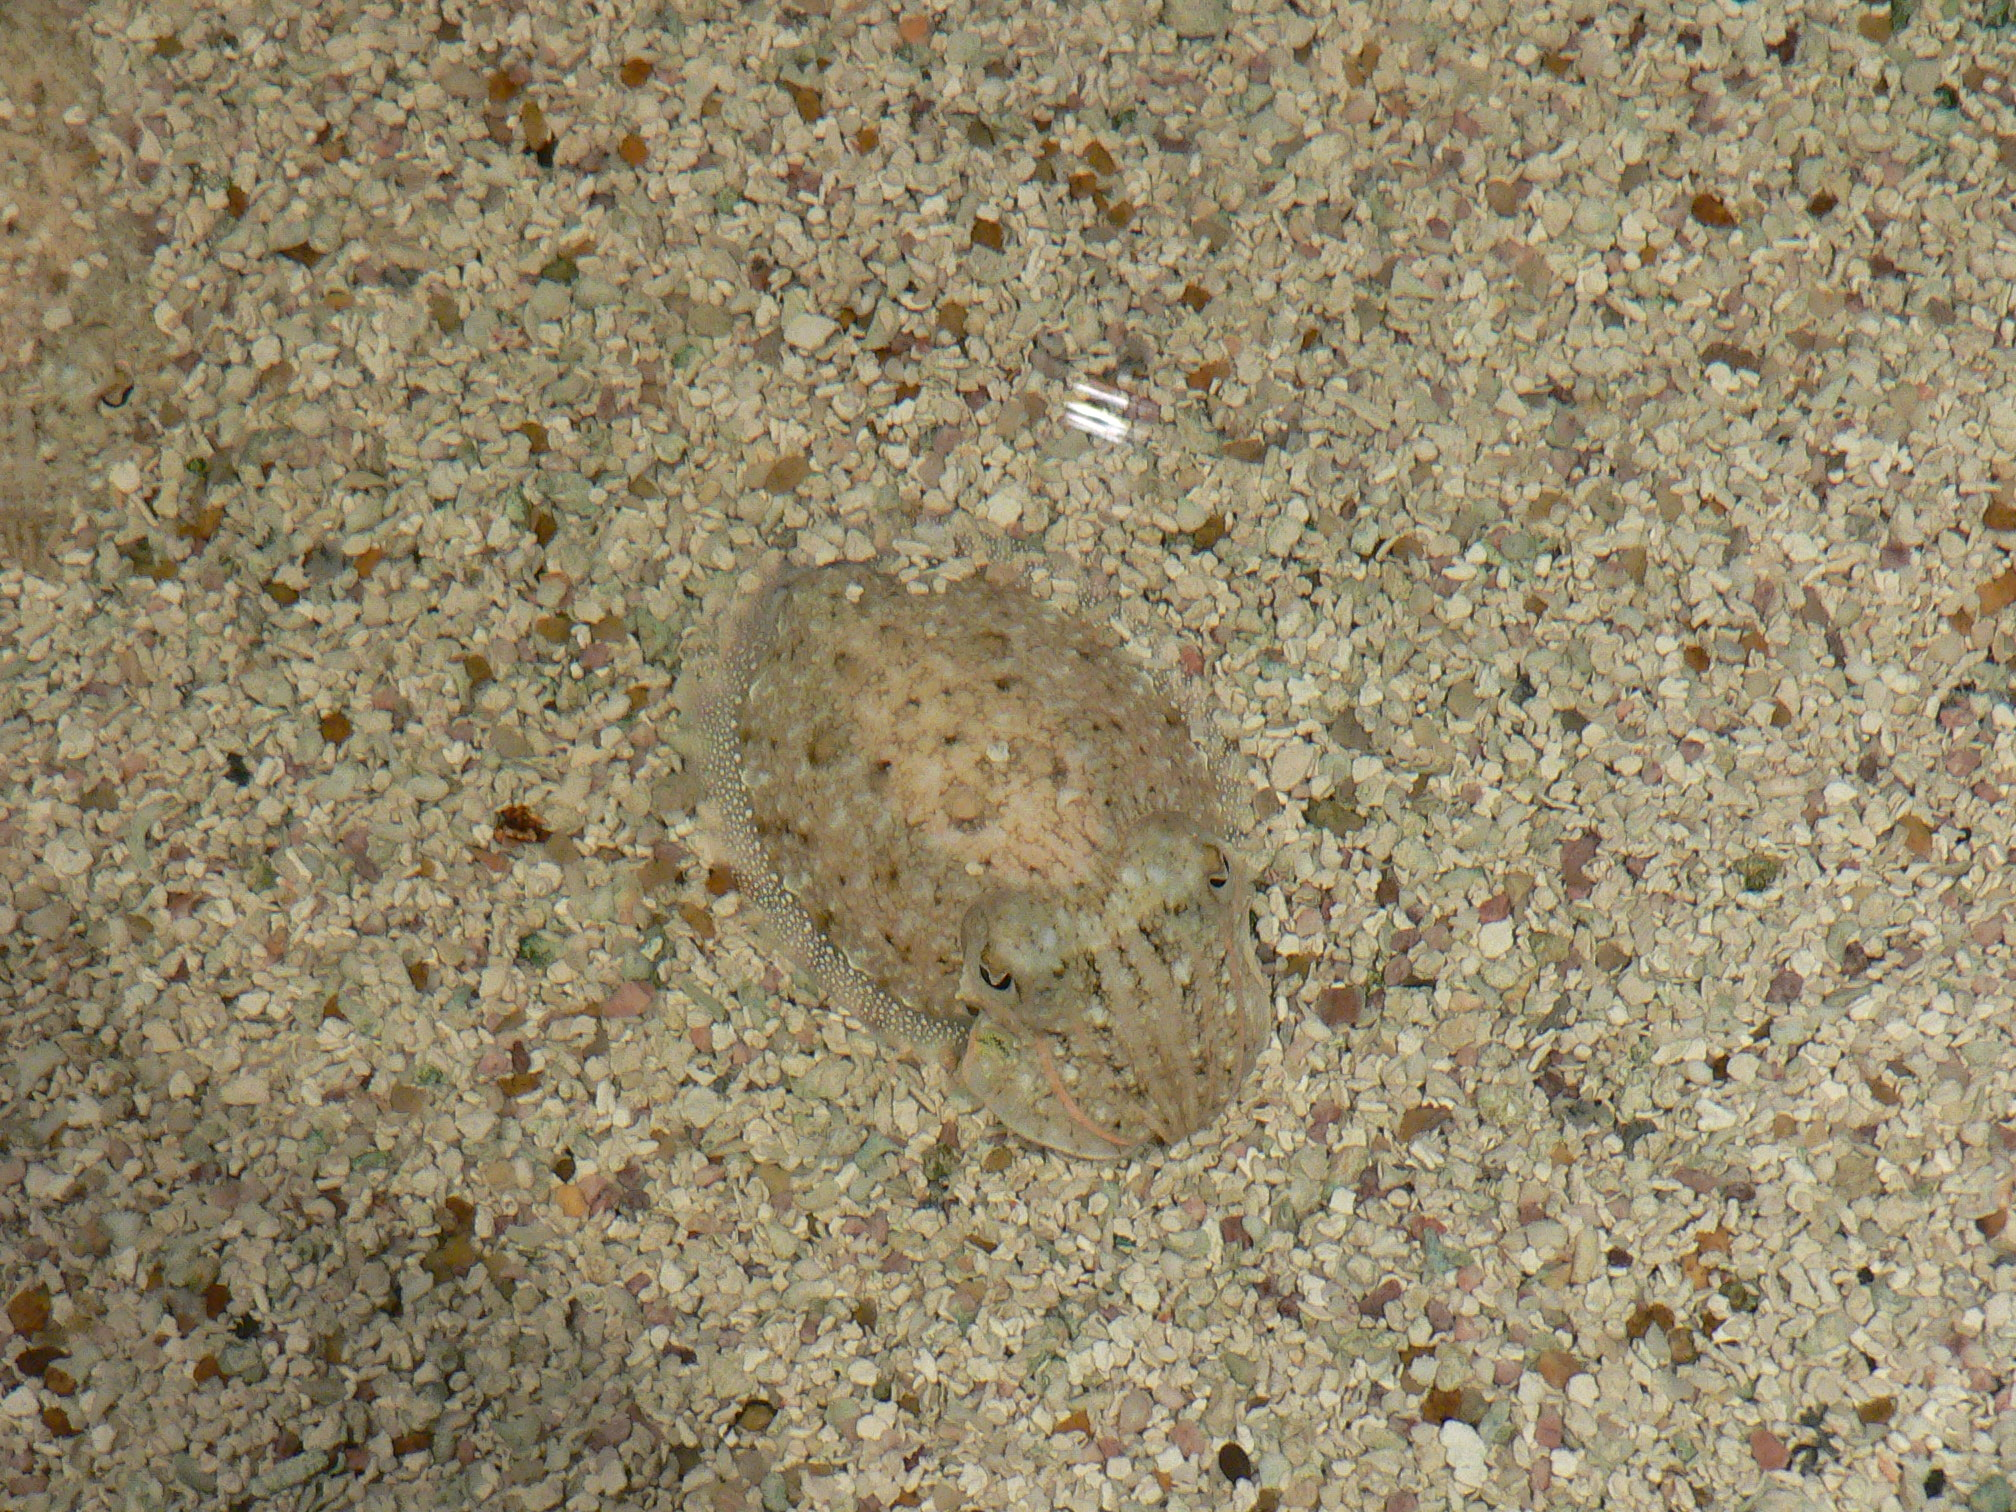 Photo of cuttlefish against mottled sea bottom